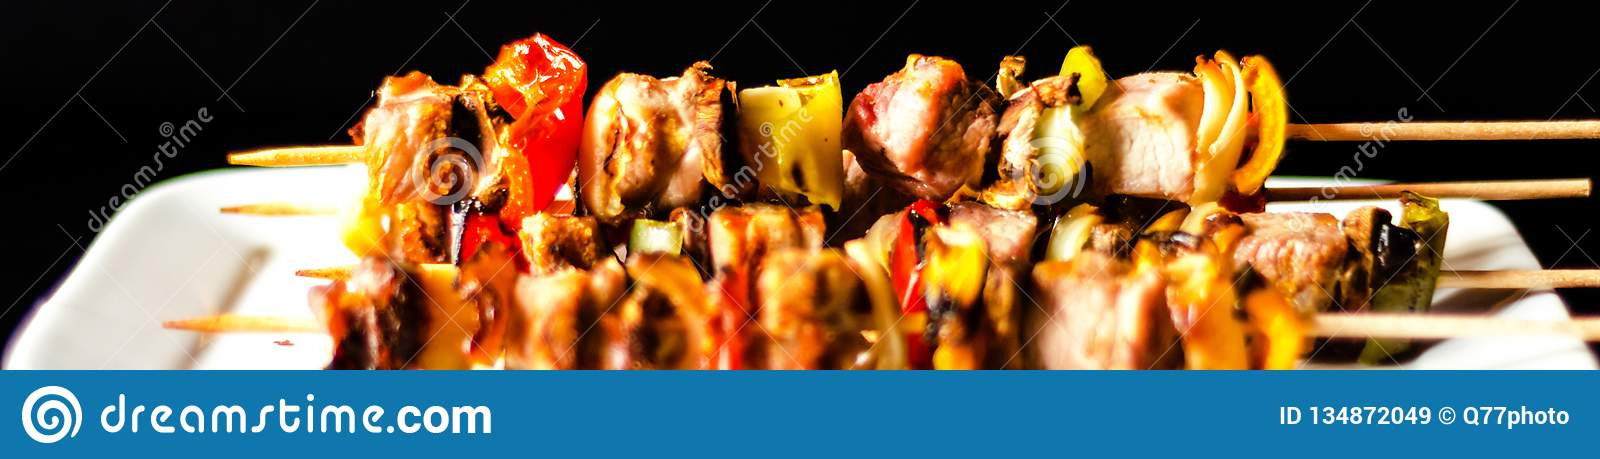 Grilled skewers of meat and vegetables on a wooden board, colorful and tasty dish